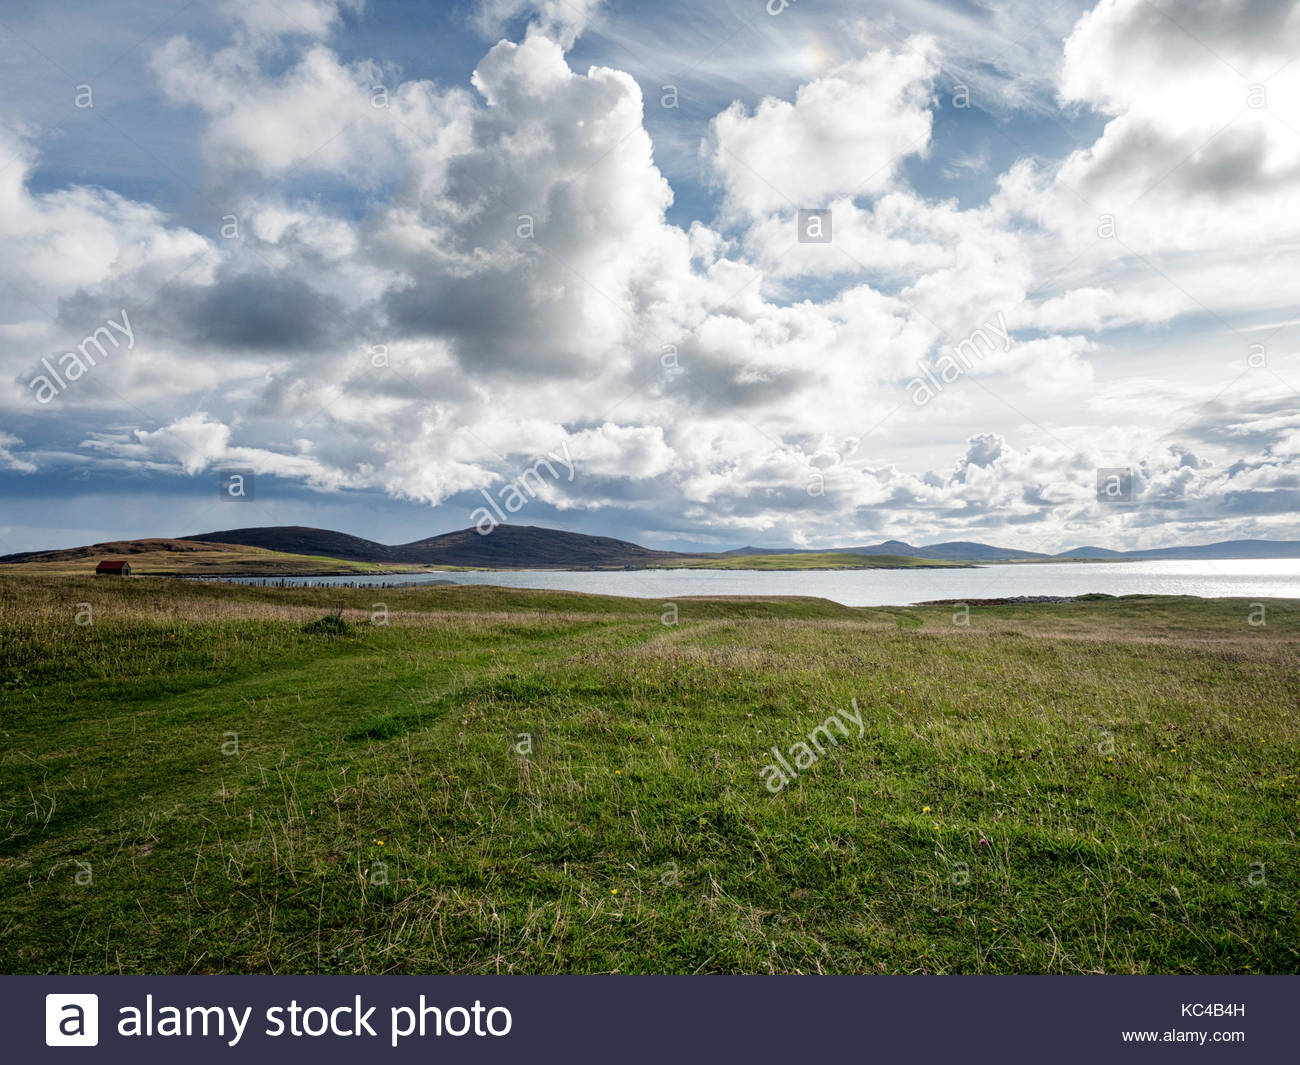 Trinity Temple The Northern Highlands and the Western Isles, North Uist Stock Photos & North Uist Stock Images - Alamy